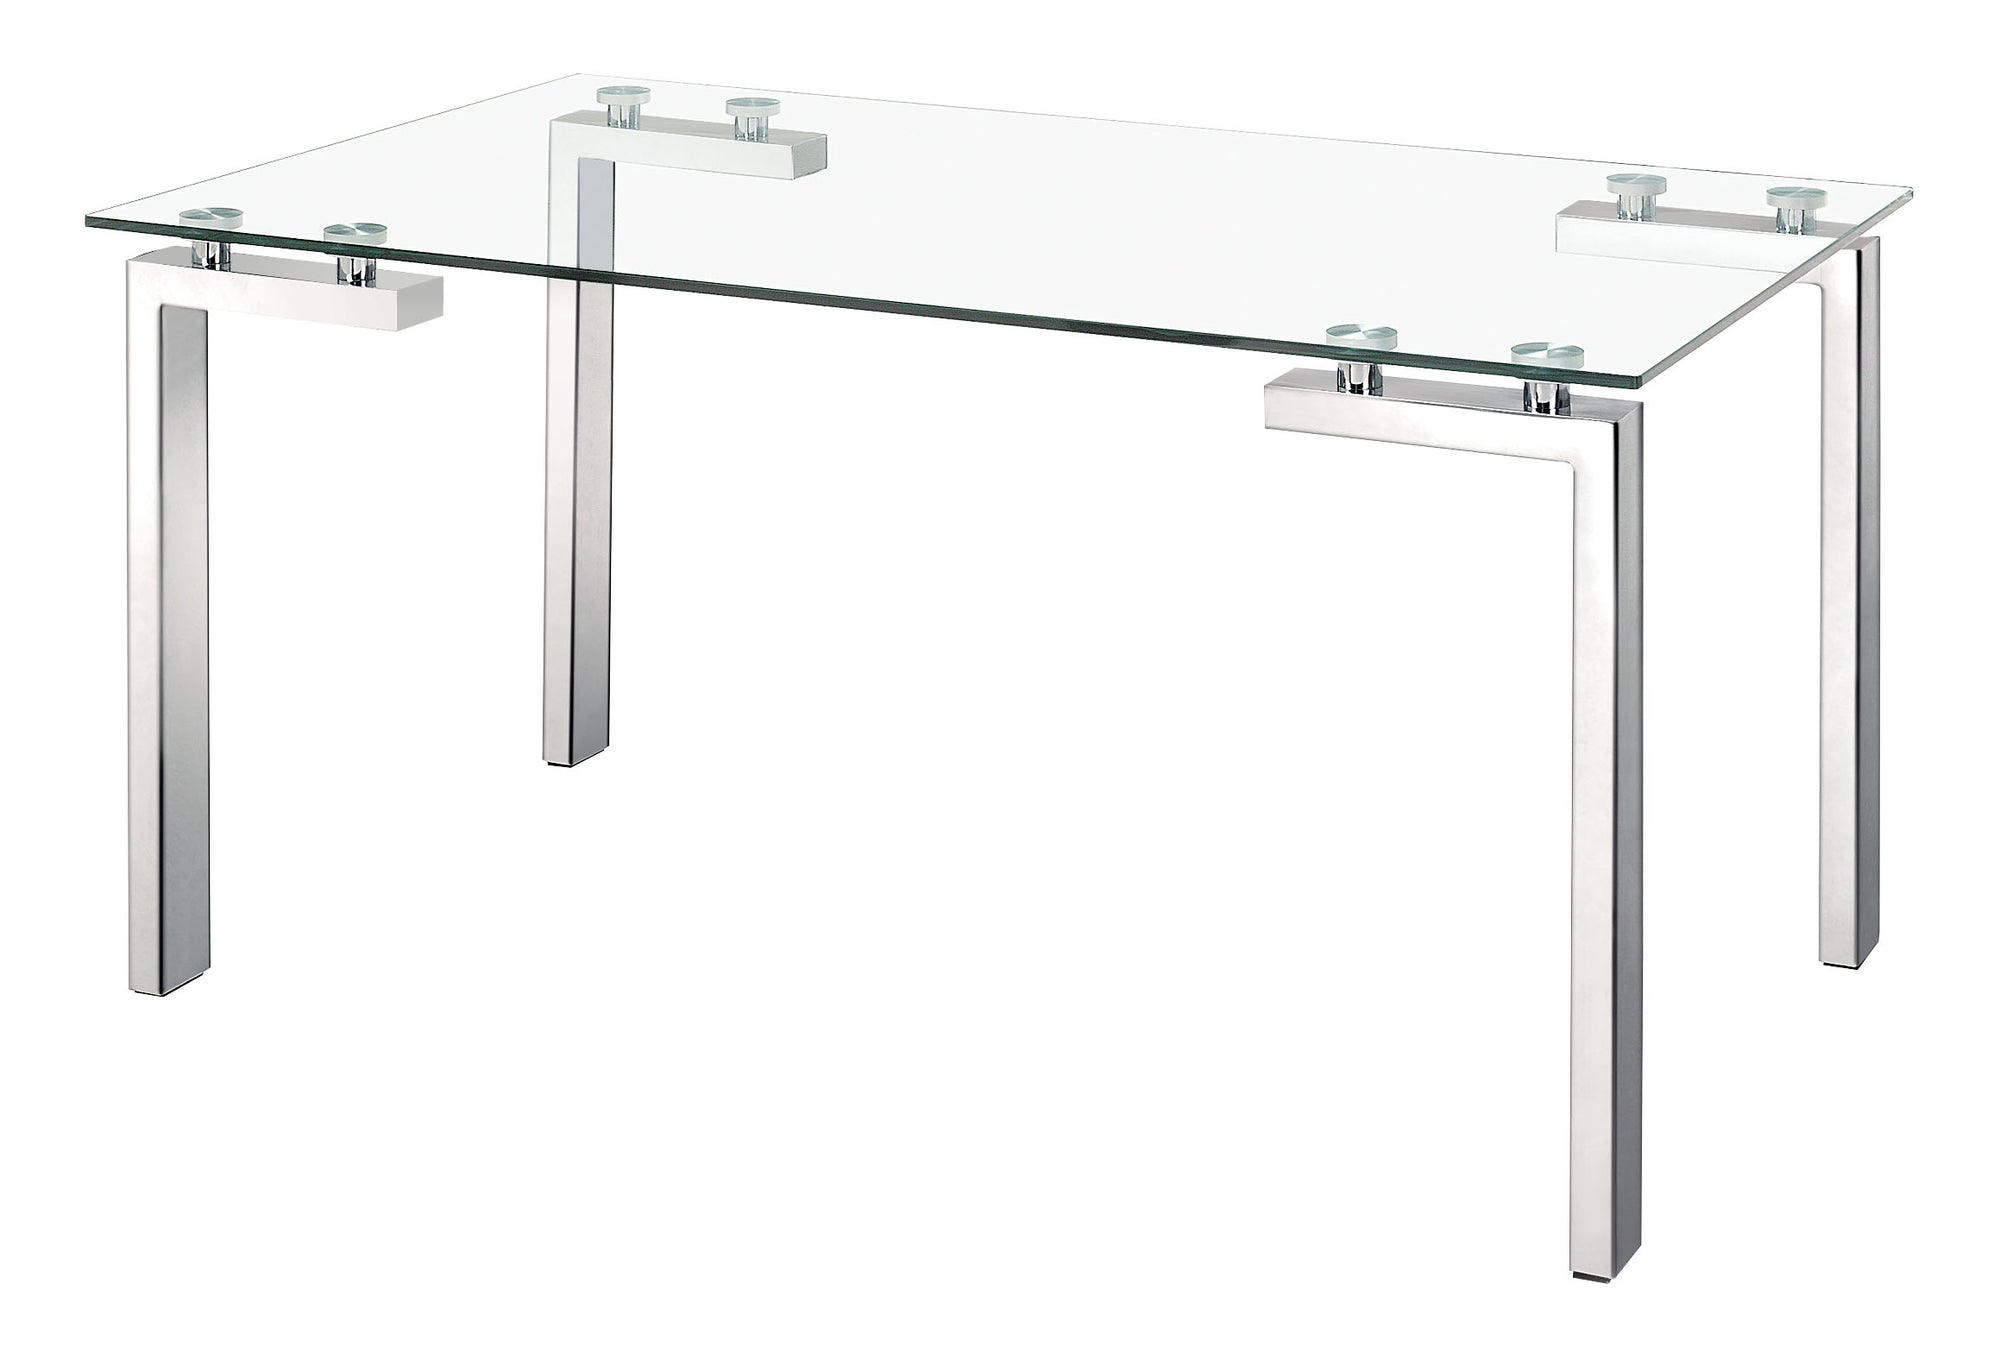 Executive Desk with Stainless Steel Frame and Glass Top - OfficeDesk.com